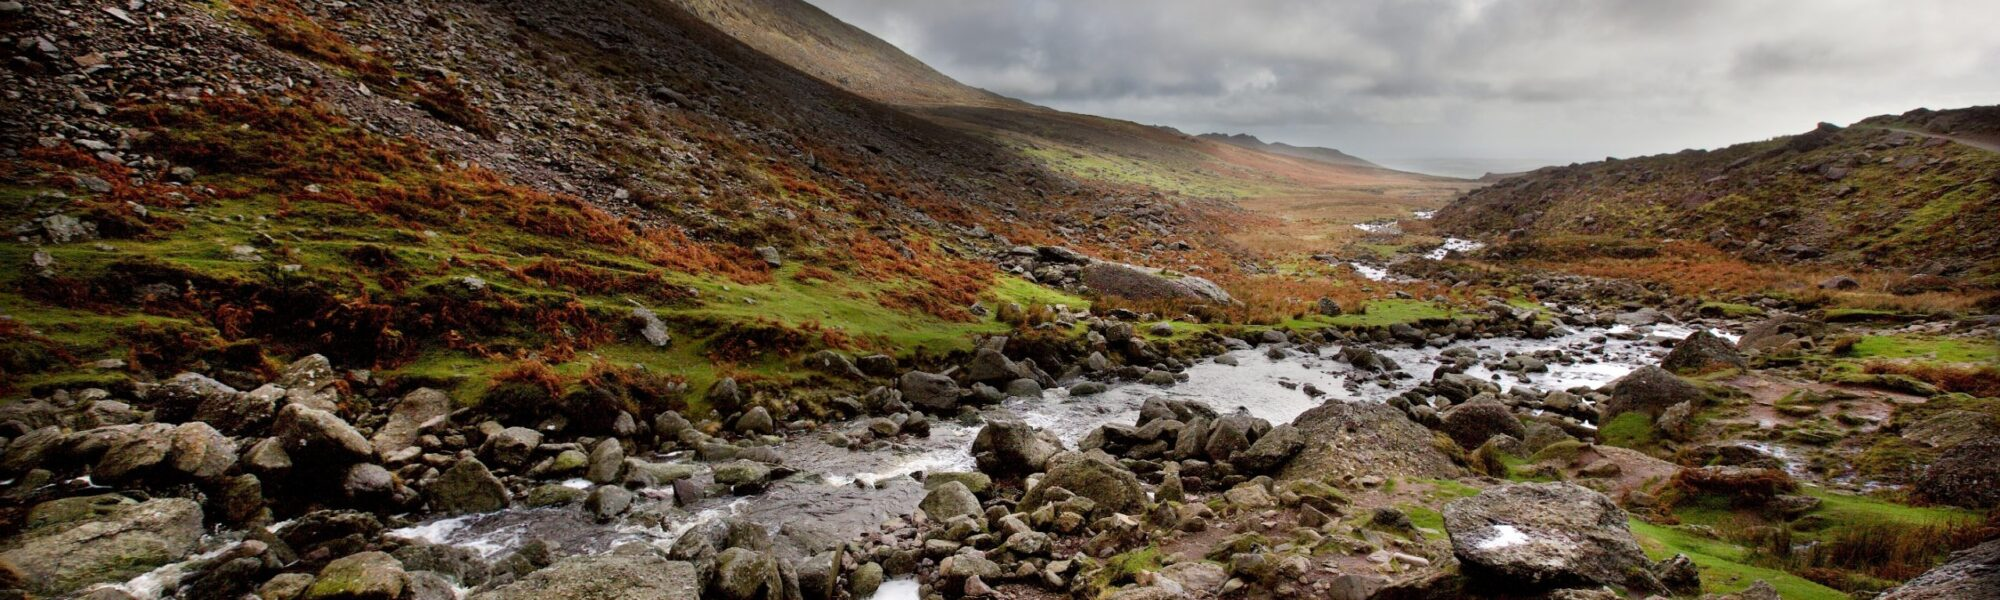 La River Mahon dans les Comeragh Mountains - Michael Foley - cc